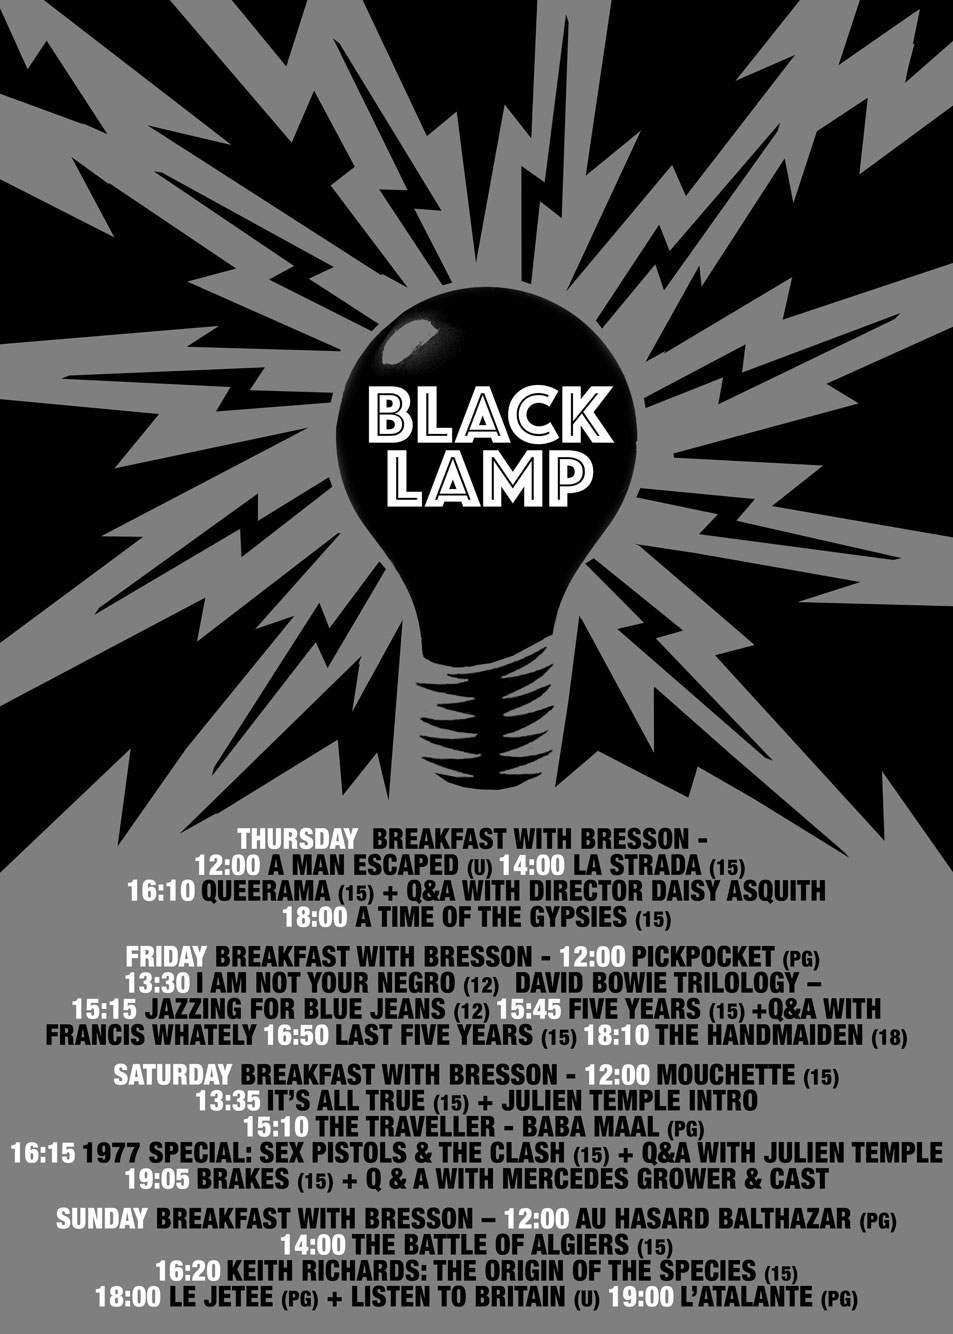 CINER---BLACK-LAMP-Poster-(1)a